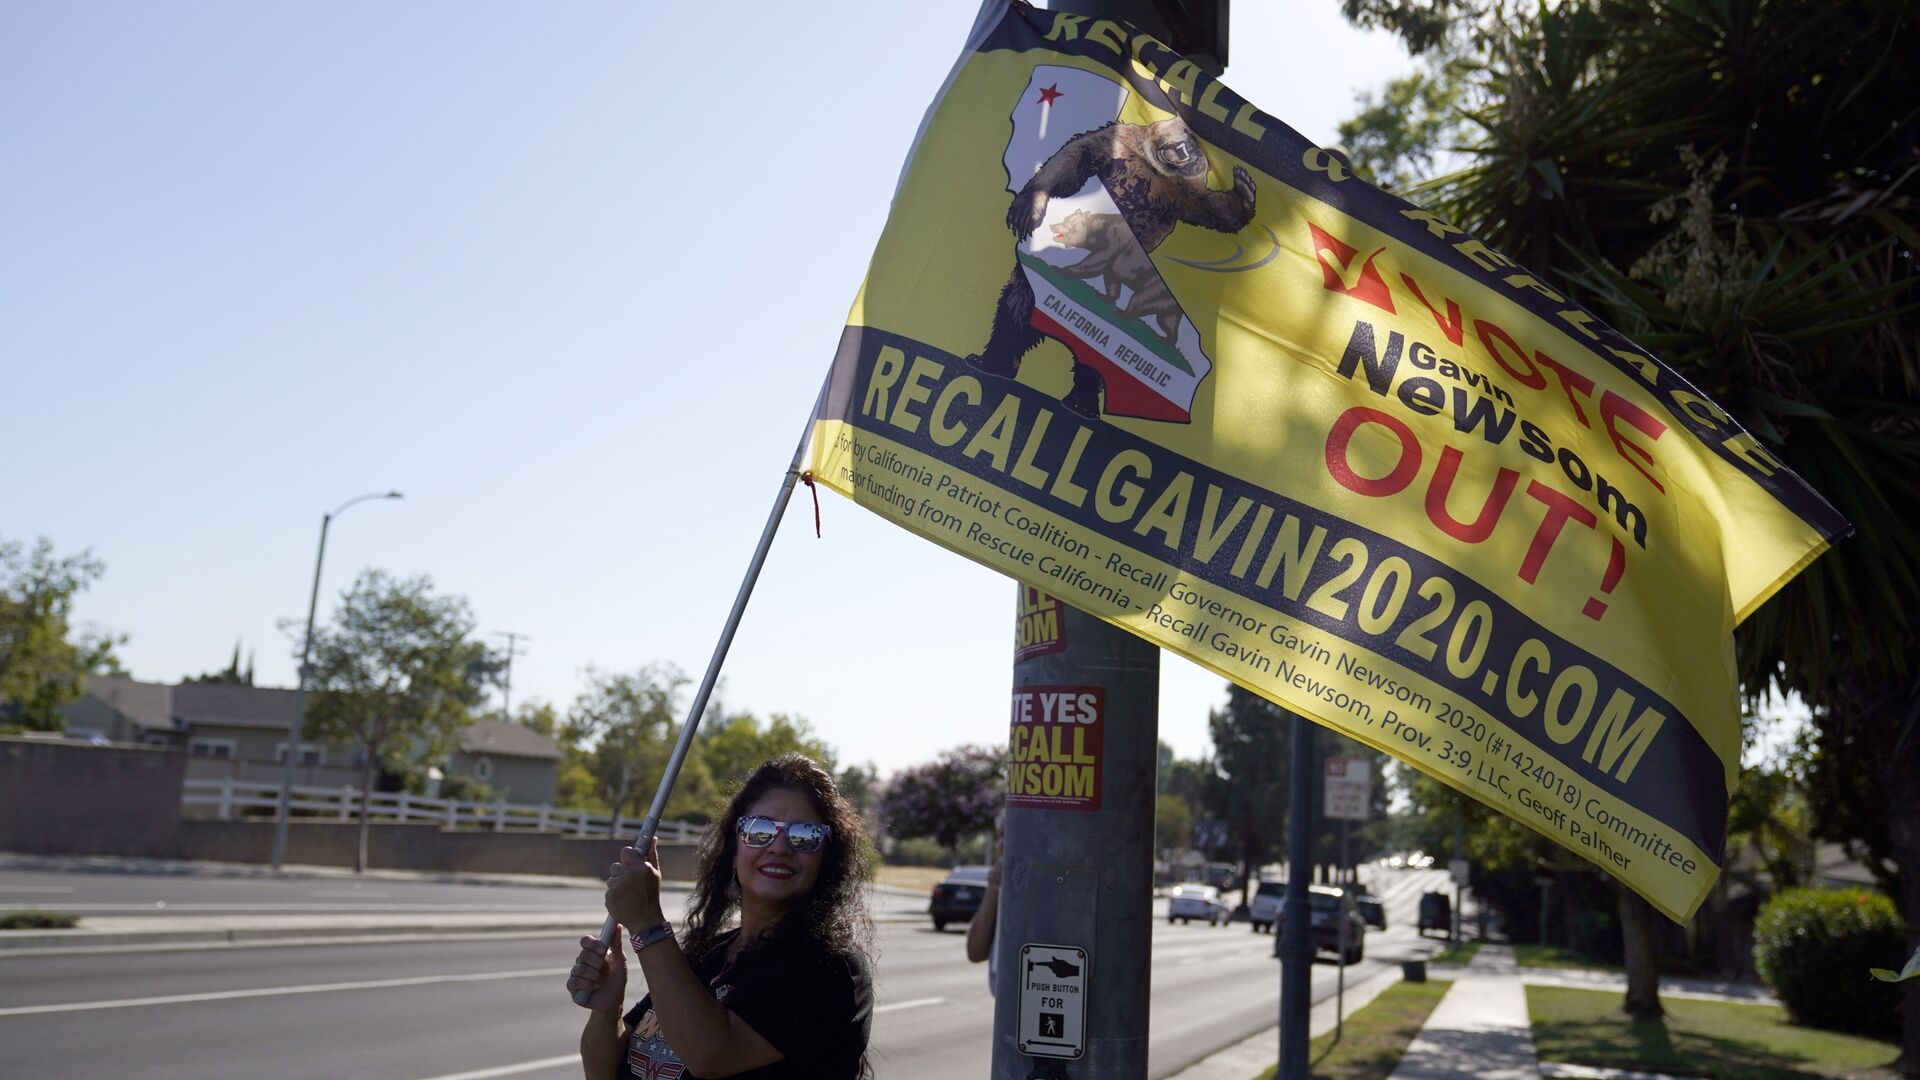 A supporter of the California recall of Gov. Gavin Newsom holds a sign outside of a debate by Republican gubernatorial candidates at the Richard Nixon Presidential Library Wednesday, Aug. 4, 2021, in Yorba Linda, Calif. Newsom faces a Sept. 14 recall election that could remove him from office. - Sputnik International, 1920, 14.09.2021